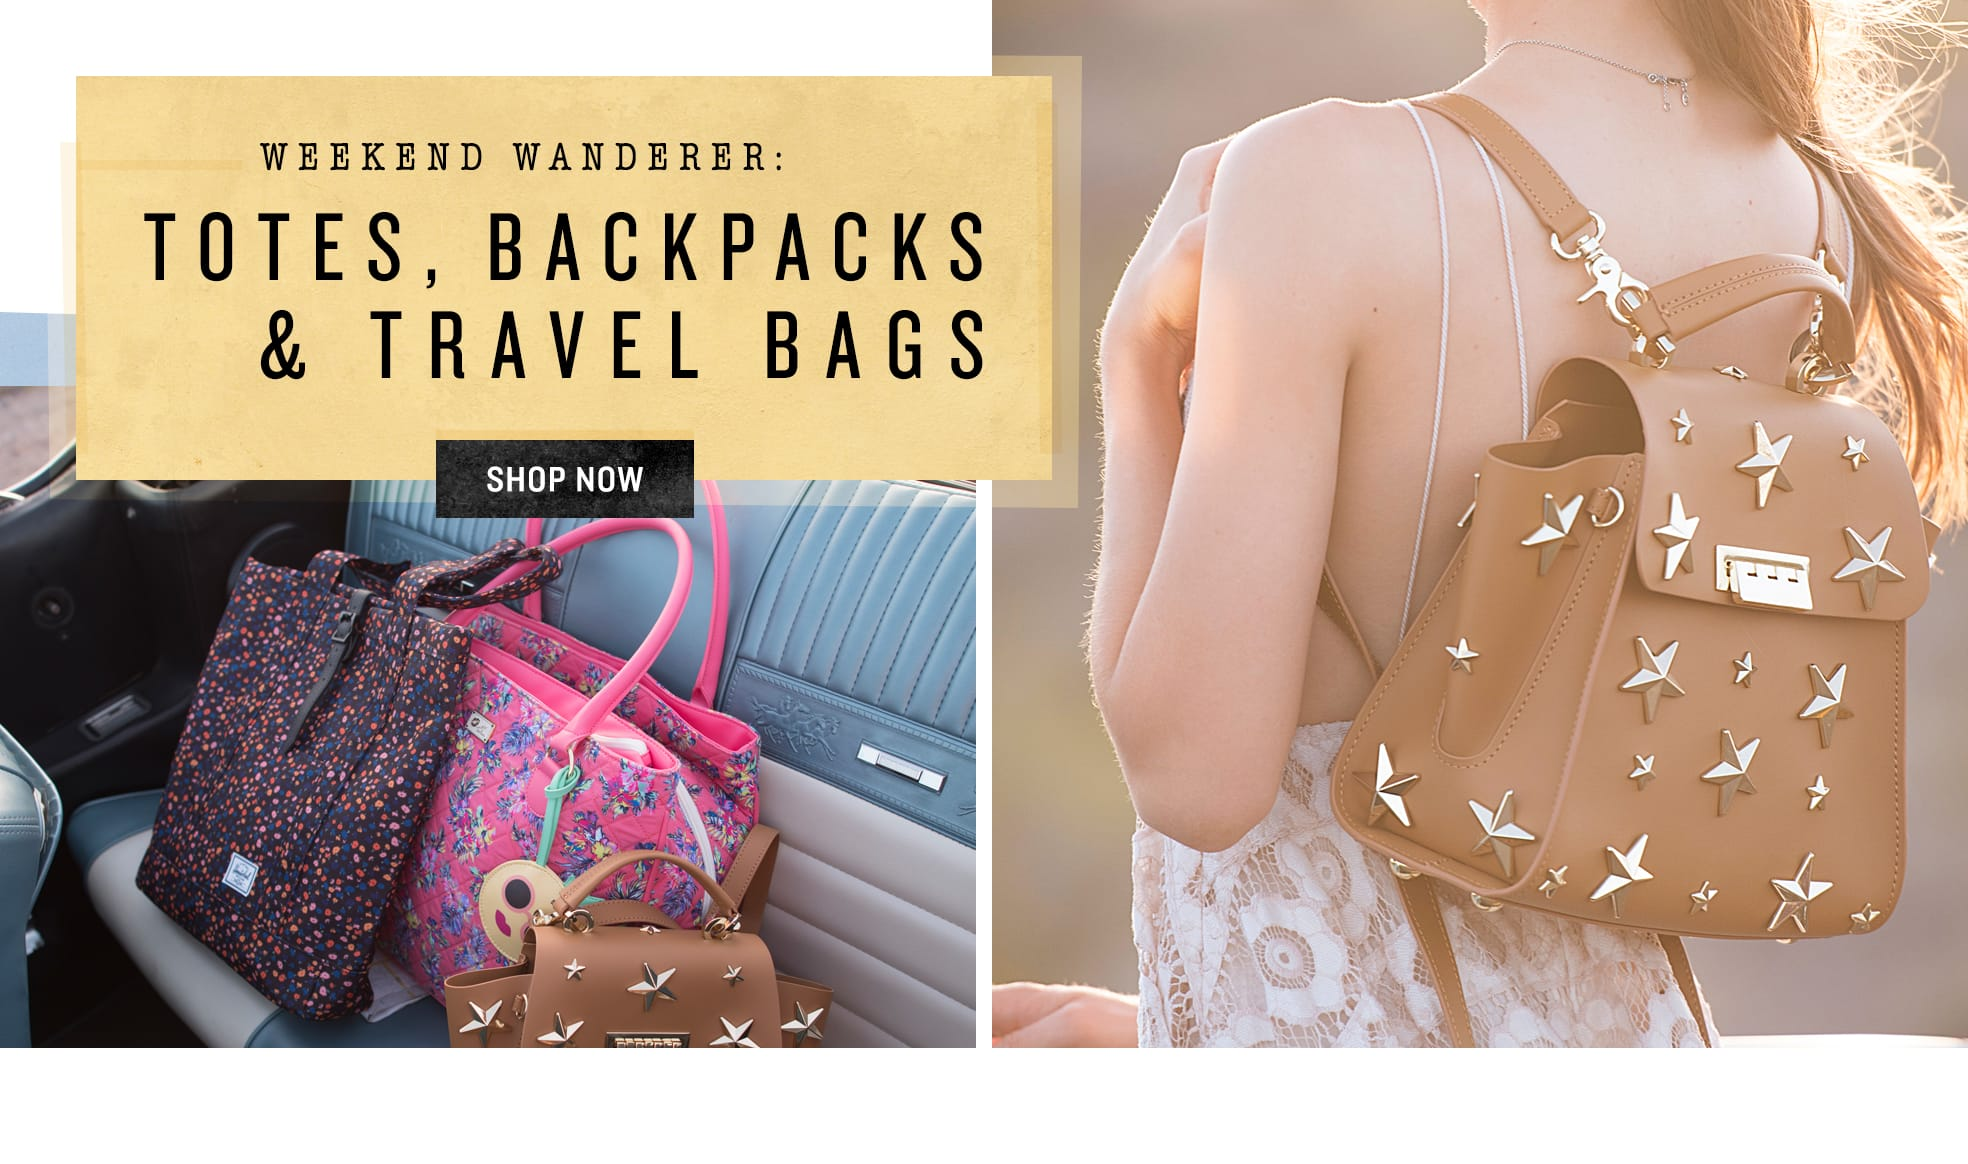 Shop Totes, Travel Bags & Backpacks